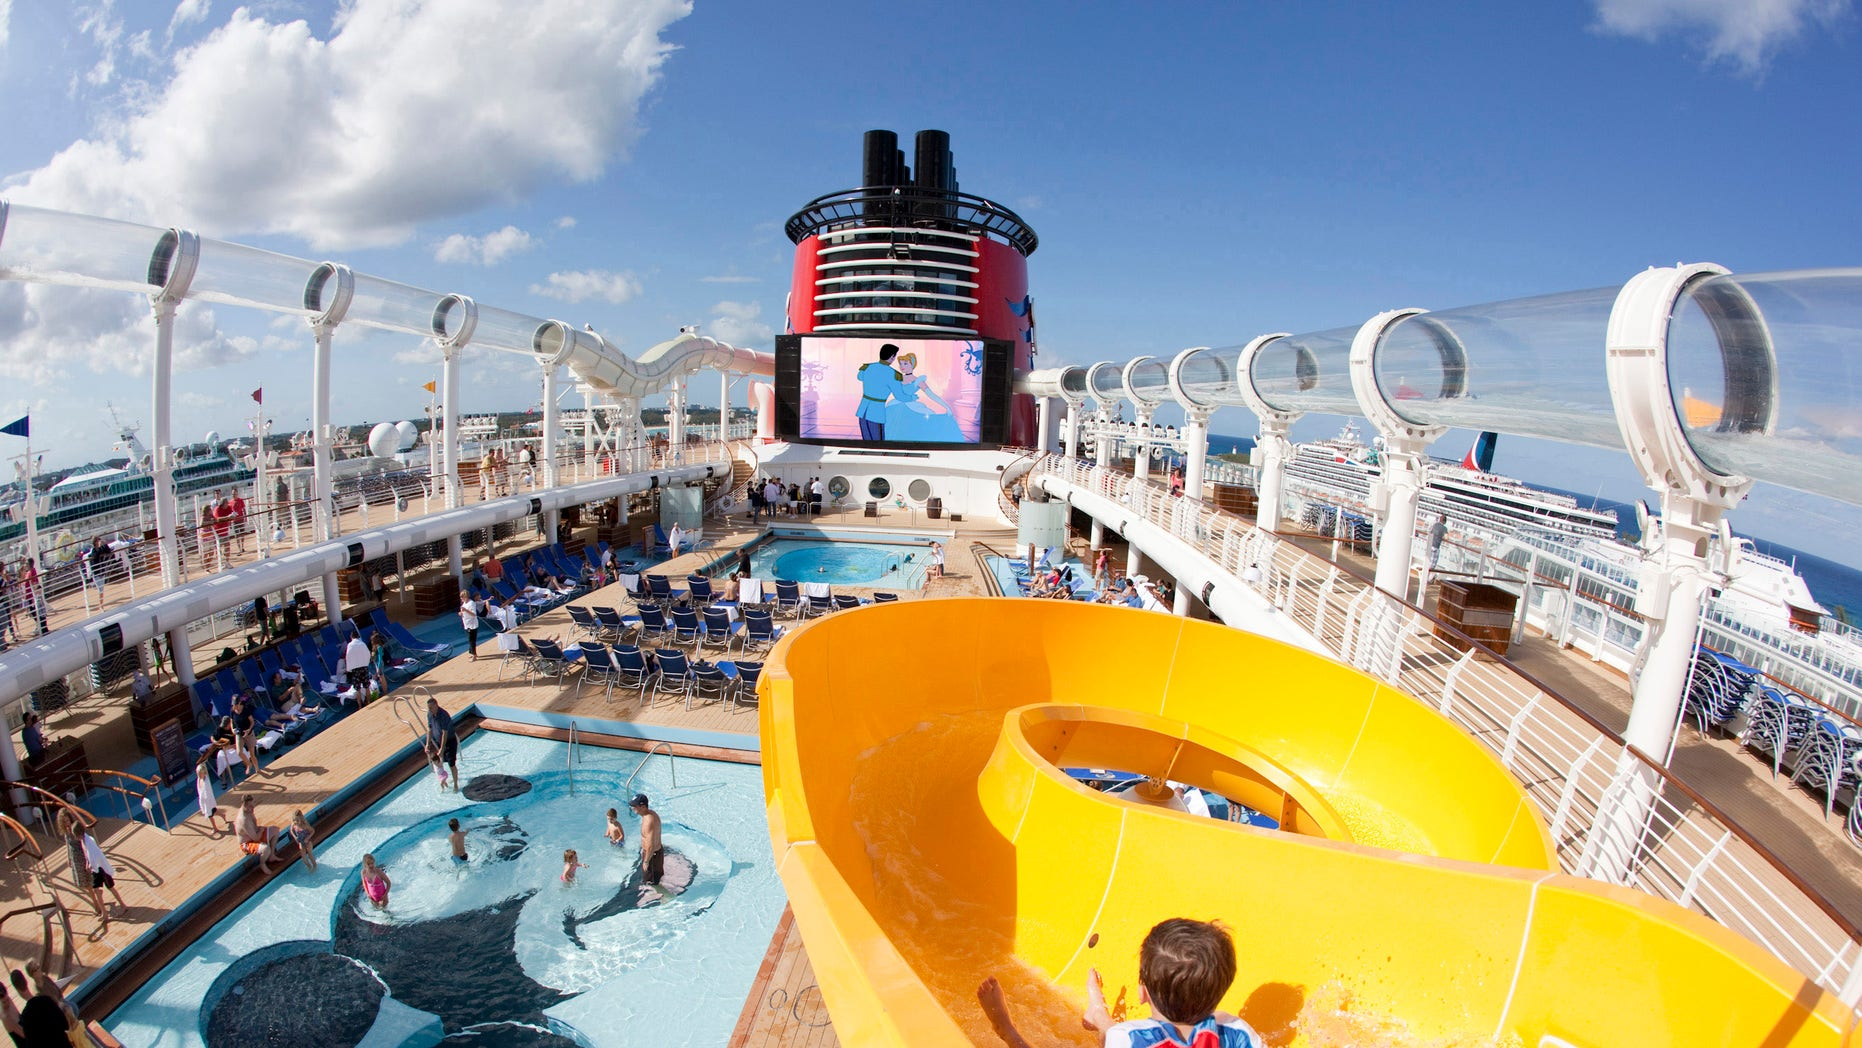 Best Overall: This play area for children features a Mickey Mouse-shaped pool and an oversized version of Mickey's hand.